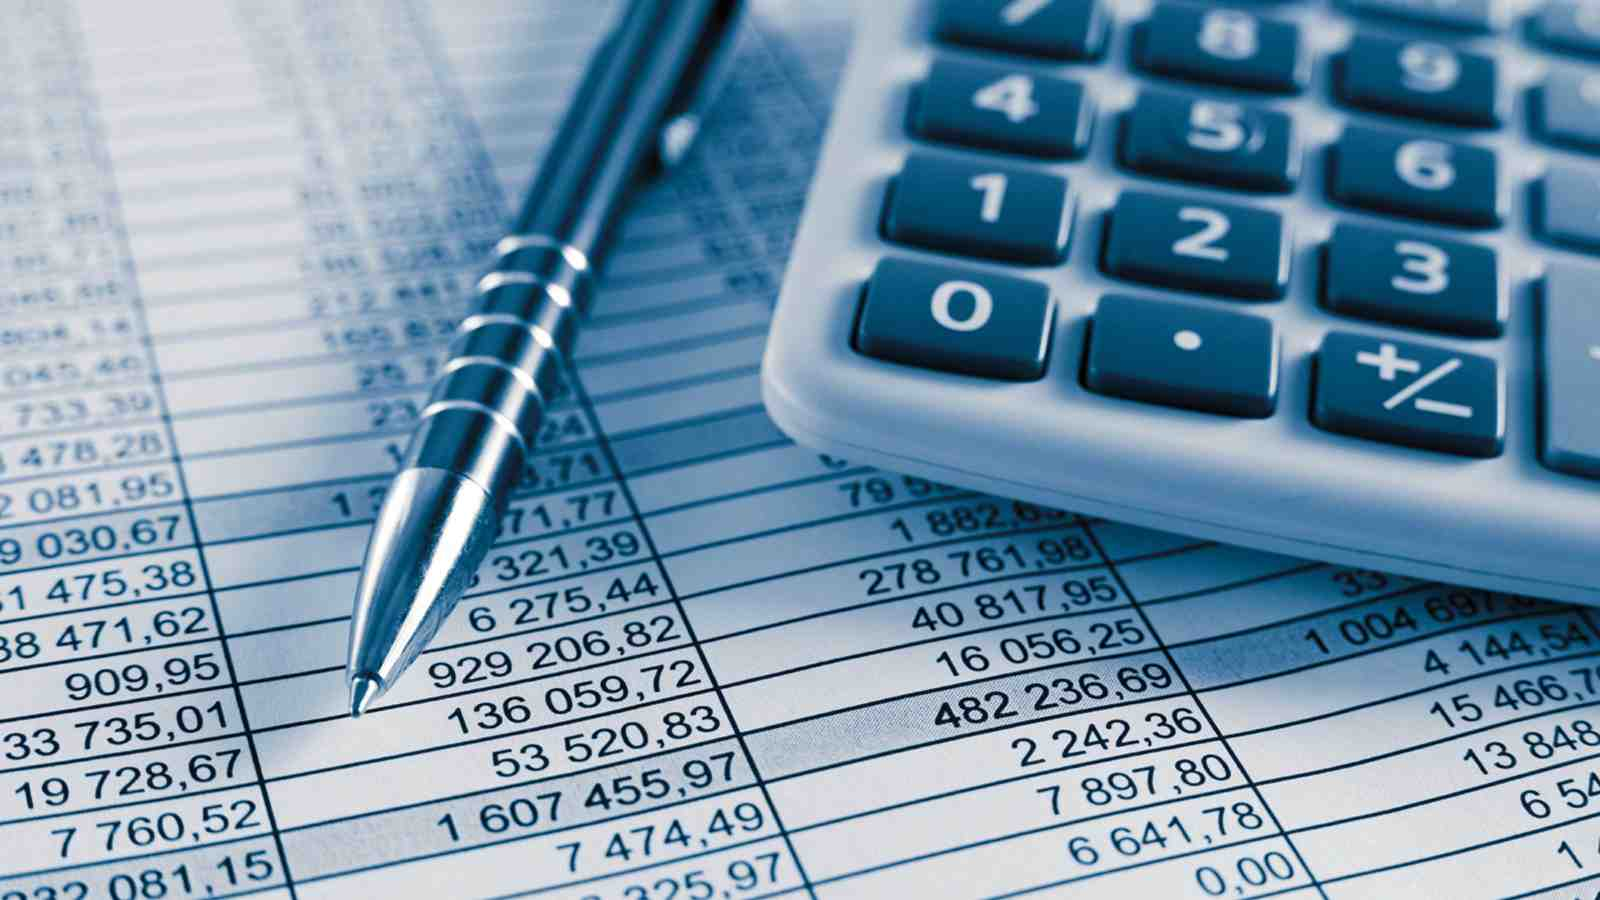 Accounting Courses In Malaysia